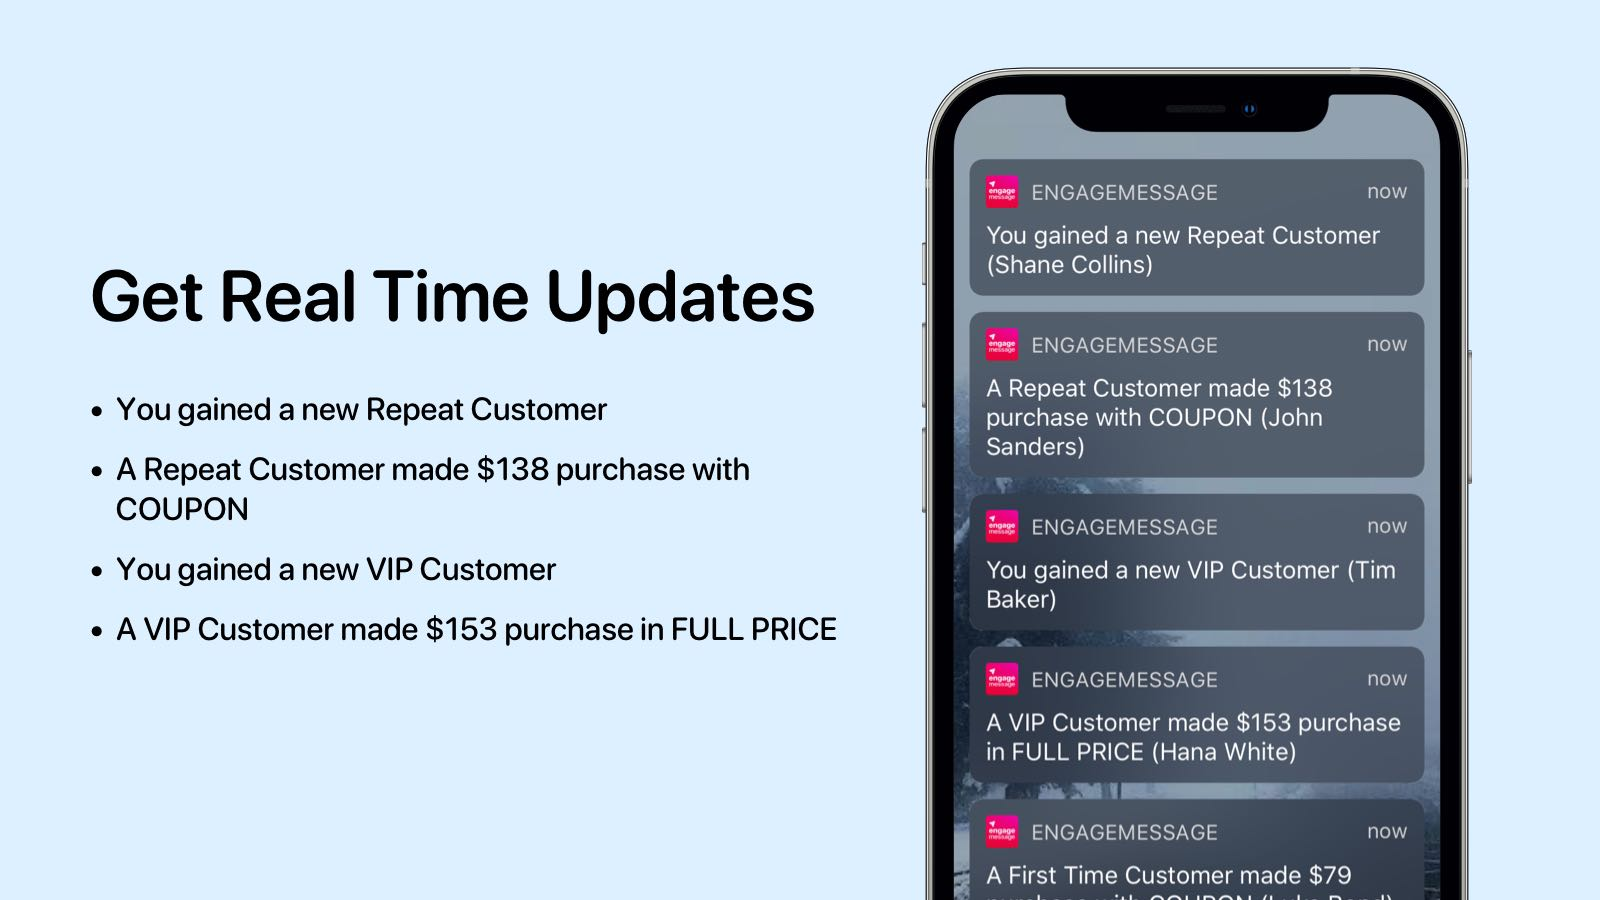 Get real time customer insight updates on your phone